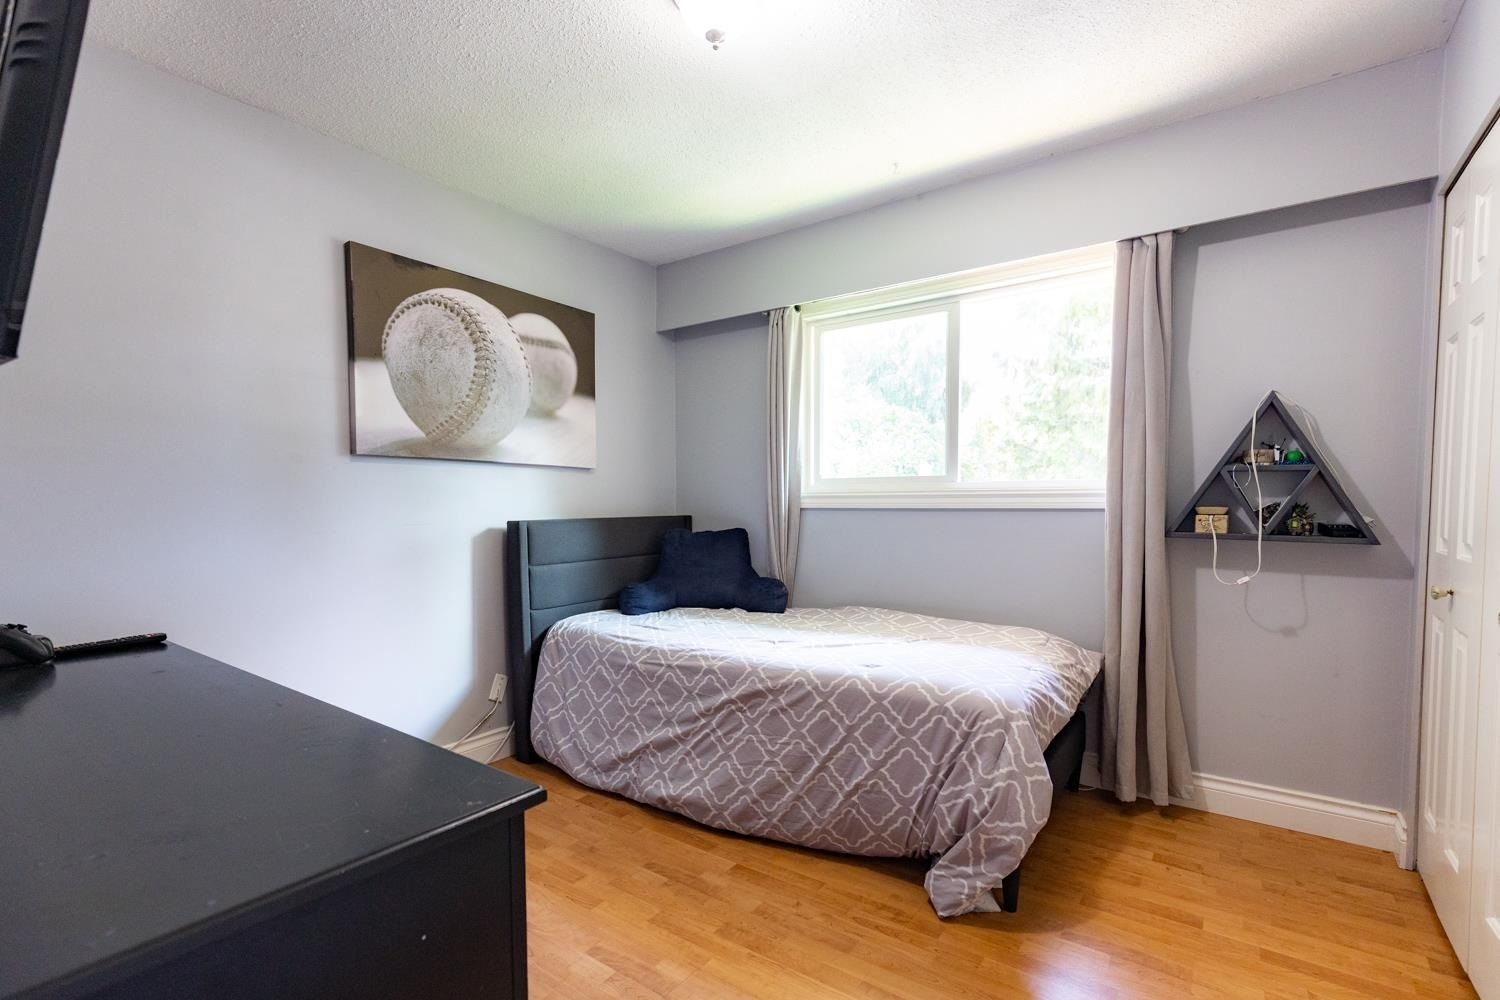 Photo 17: Photos: 2246 BEDFORD Place in Abbotsford: Abbotsford West House for sale : MLS®# R2602902